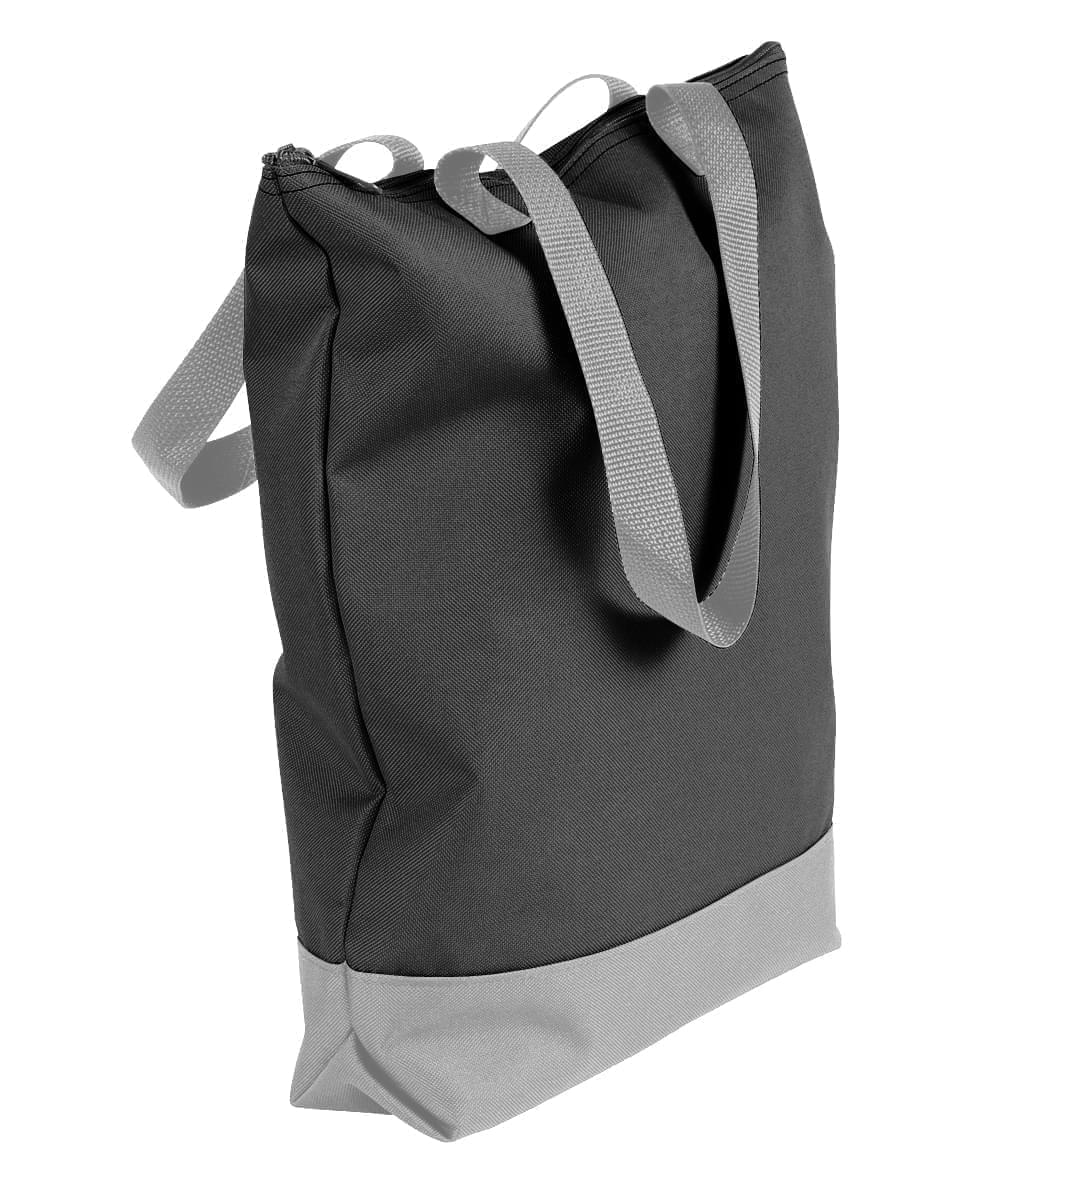 USA Made Canvas Portfolio Tote Bags, Black-Grey, 1AAMX1UAHU